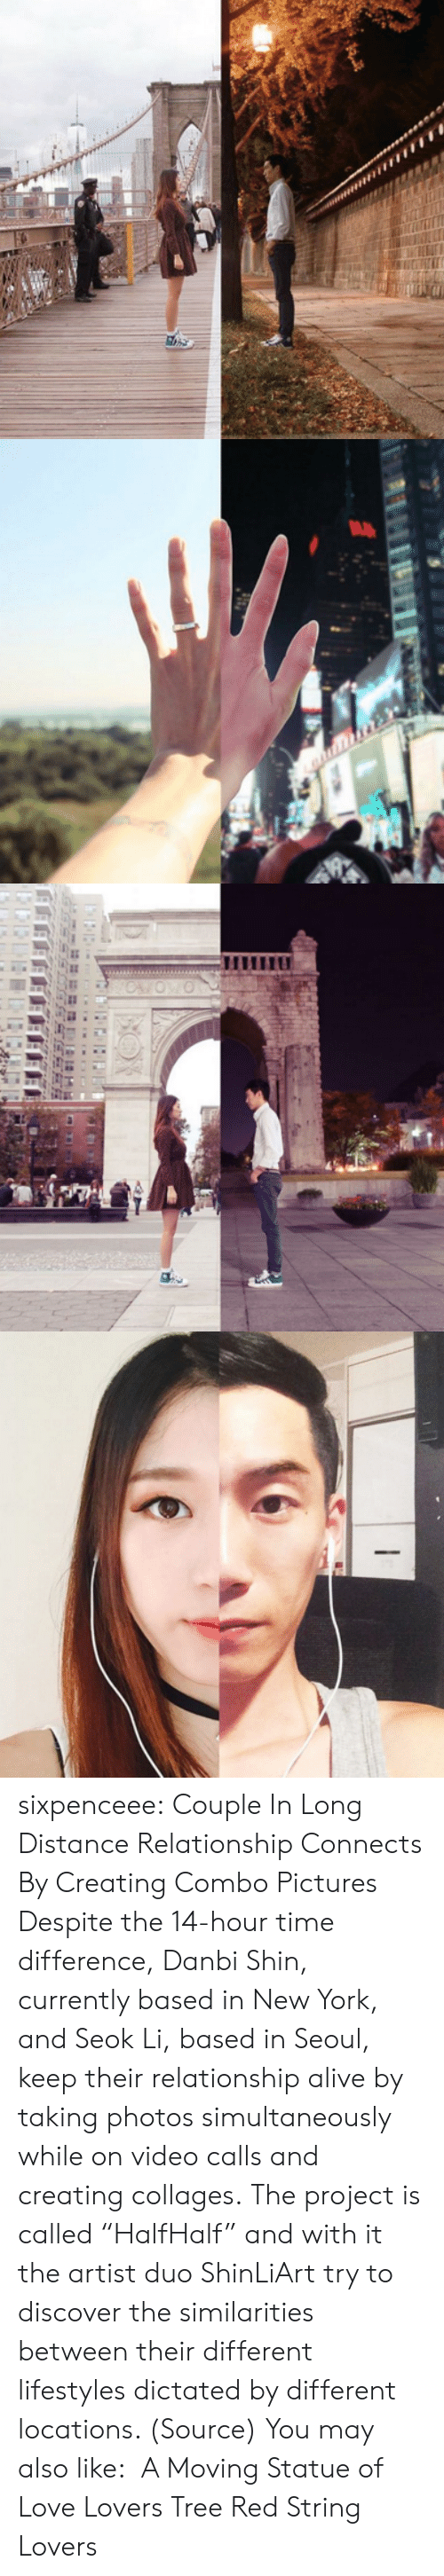 "following: sixpenceee:  Couple In Long Distance Relationship Connects By Creating Combo Pictures Despite the 14-hour time difference, Danbi Shin, currently based in New York, and Seok Li, based in Seoul, keep their relationship alive by taking photos simultaneously while on video calls and creating collages. The project is called ""HalfHalf"" and with it the artist duo ShinLiArt try to discover the similarities between their different lifestyles dictated by different locations. (Source) You may also like:  A Moving Statue of Love Lovers Tree Red String Lovers"